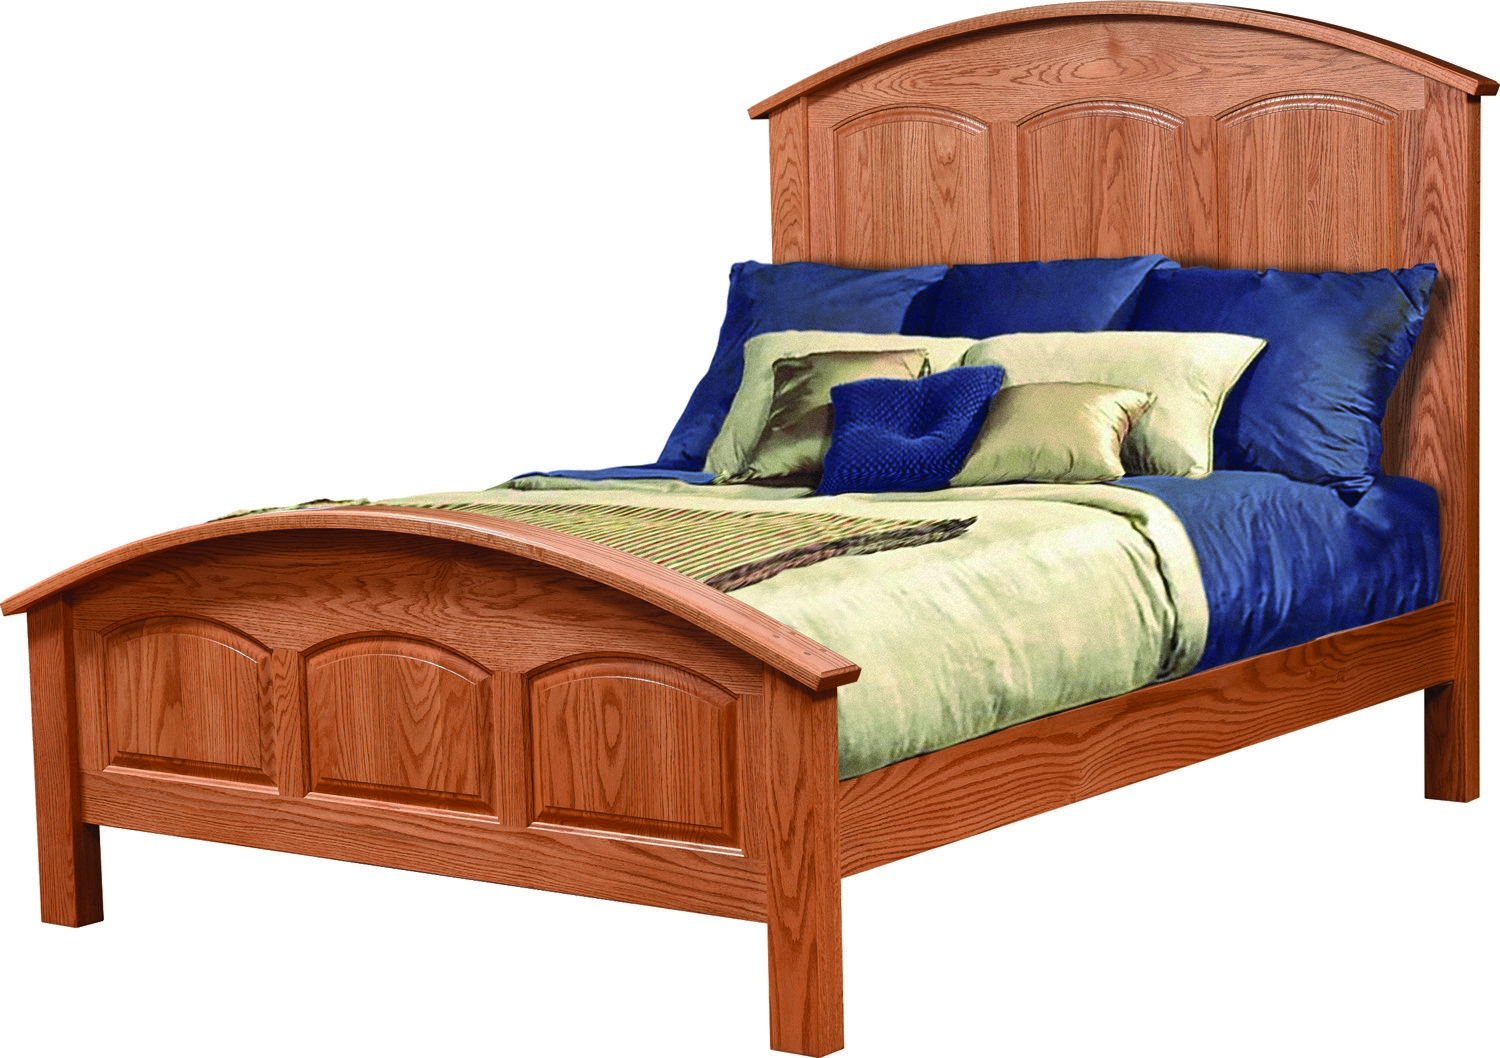 1501-100 Traditional Bed